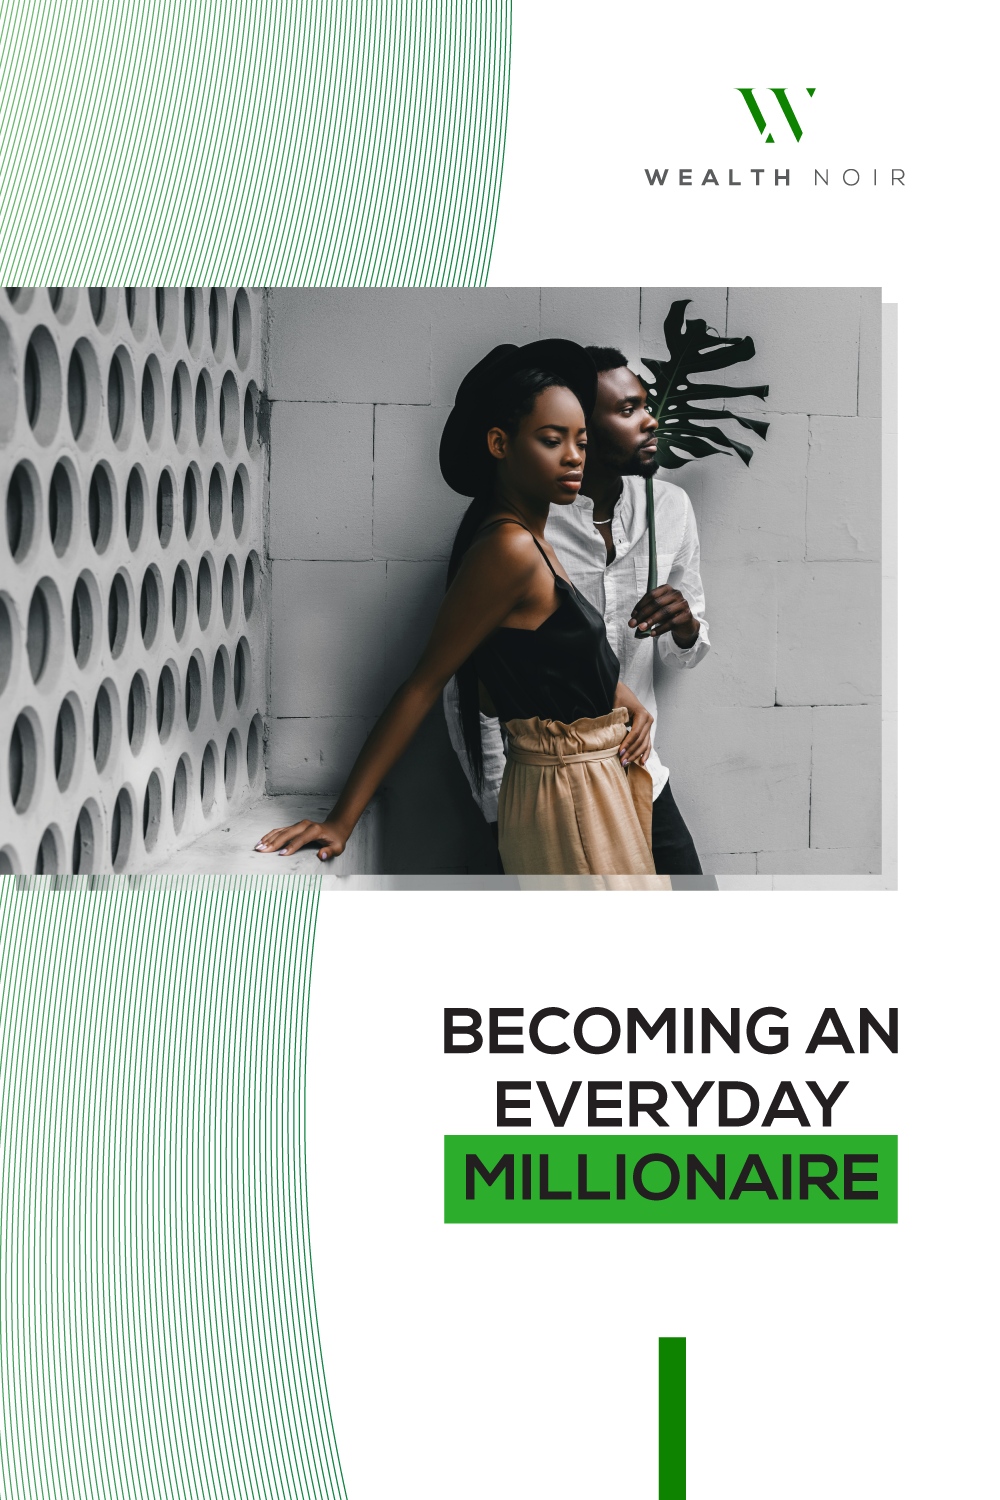 Becoming an Everyday Millionaire